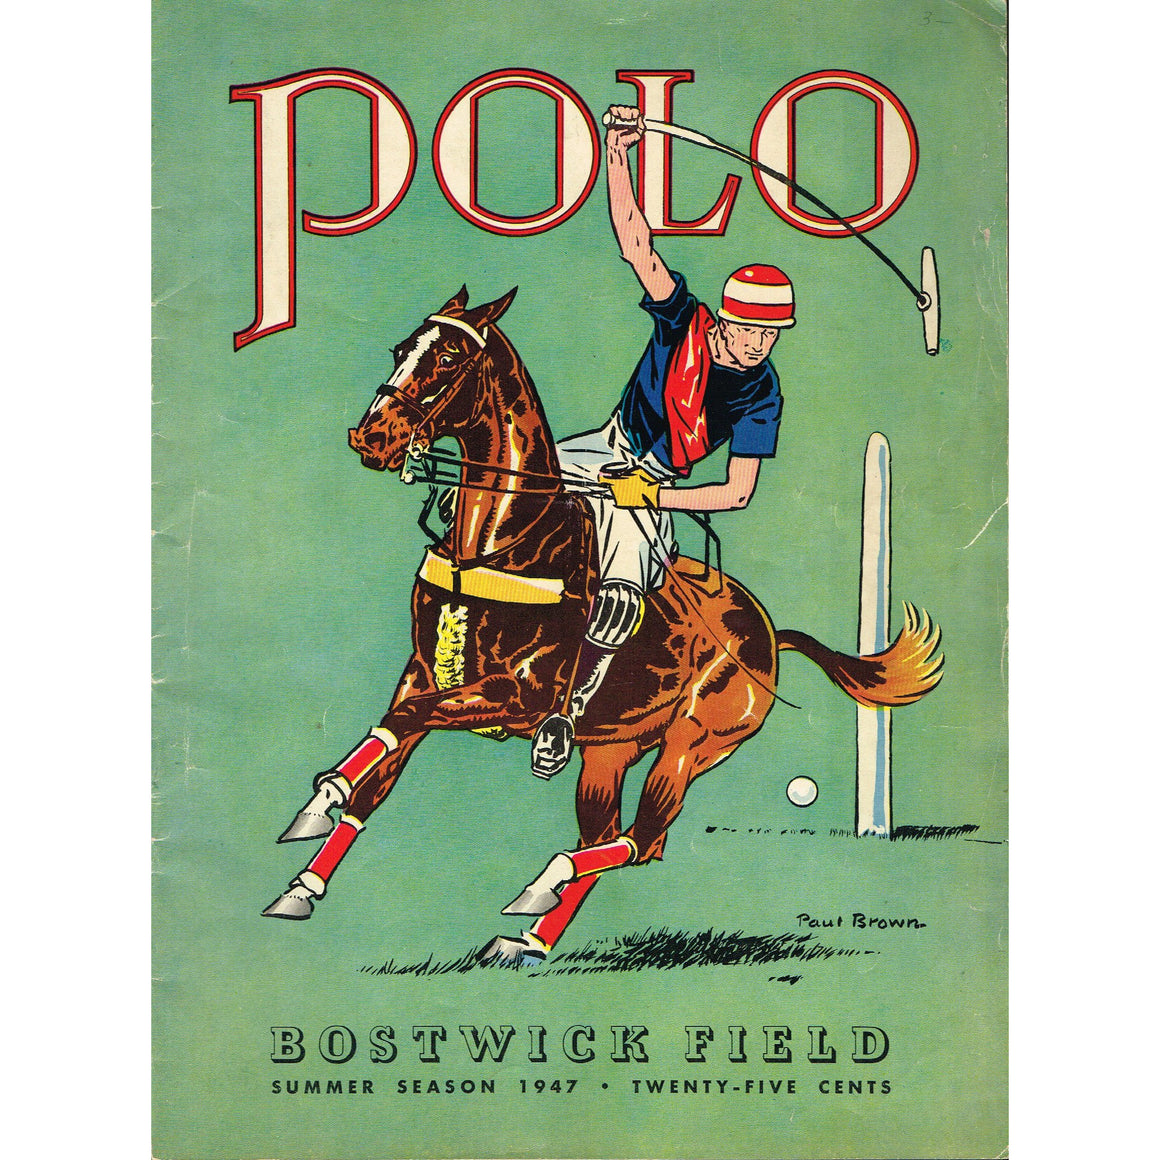 Polo Bostwick Field Summer 1947